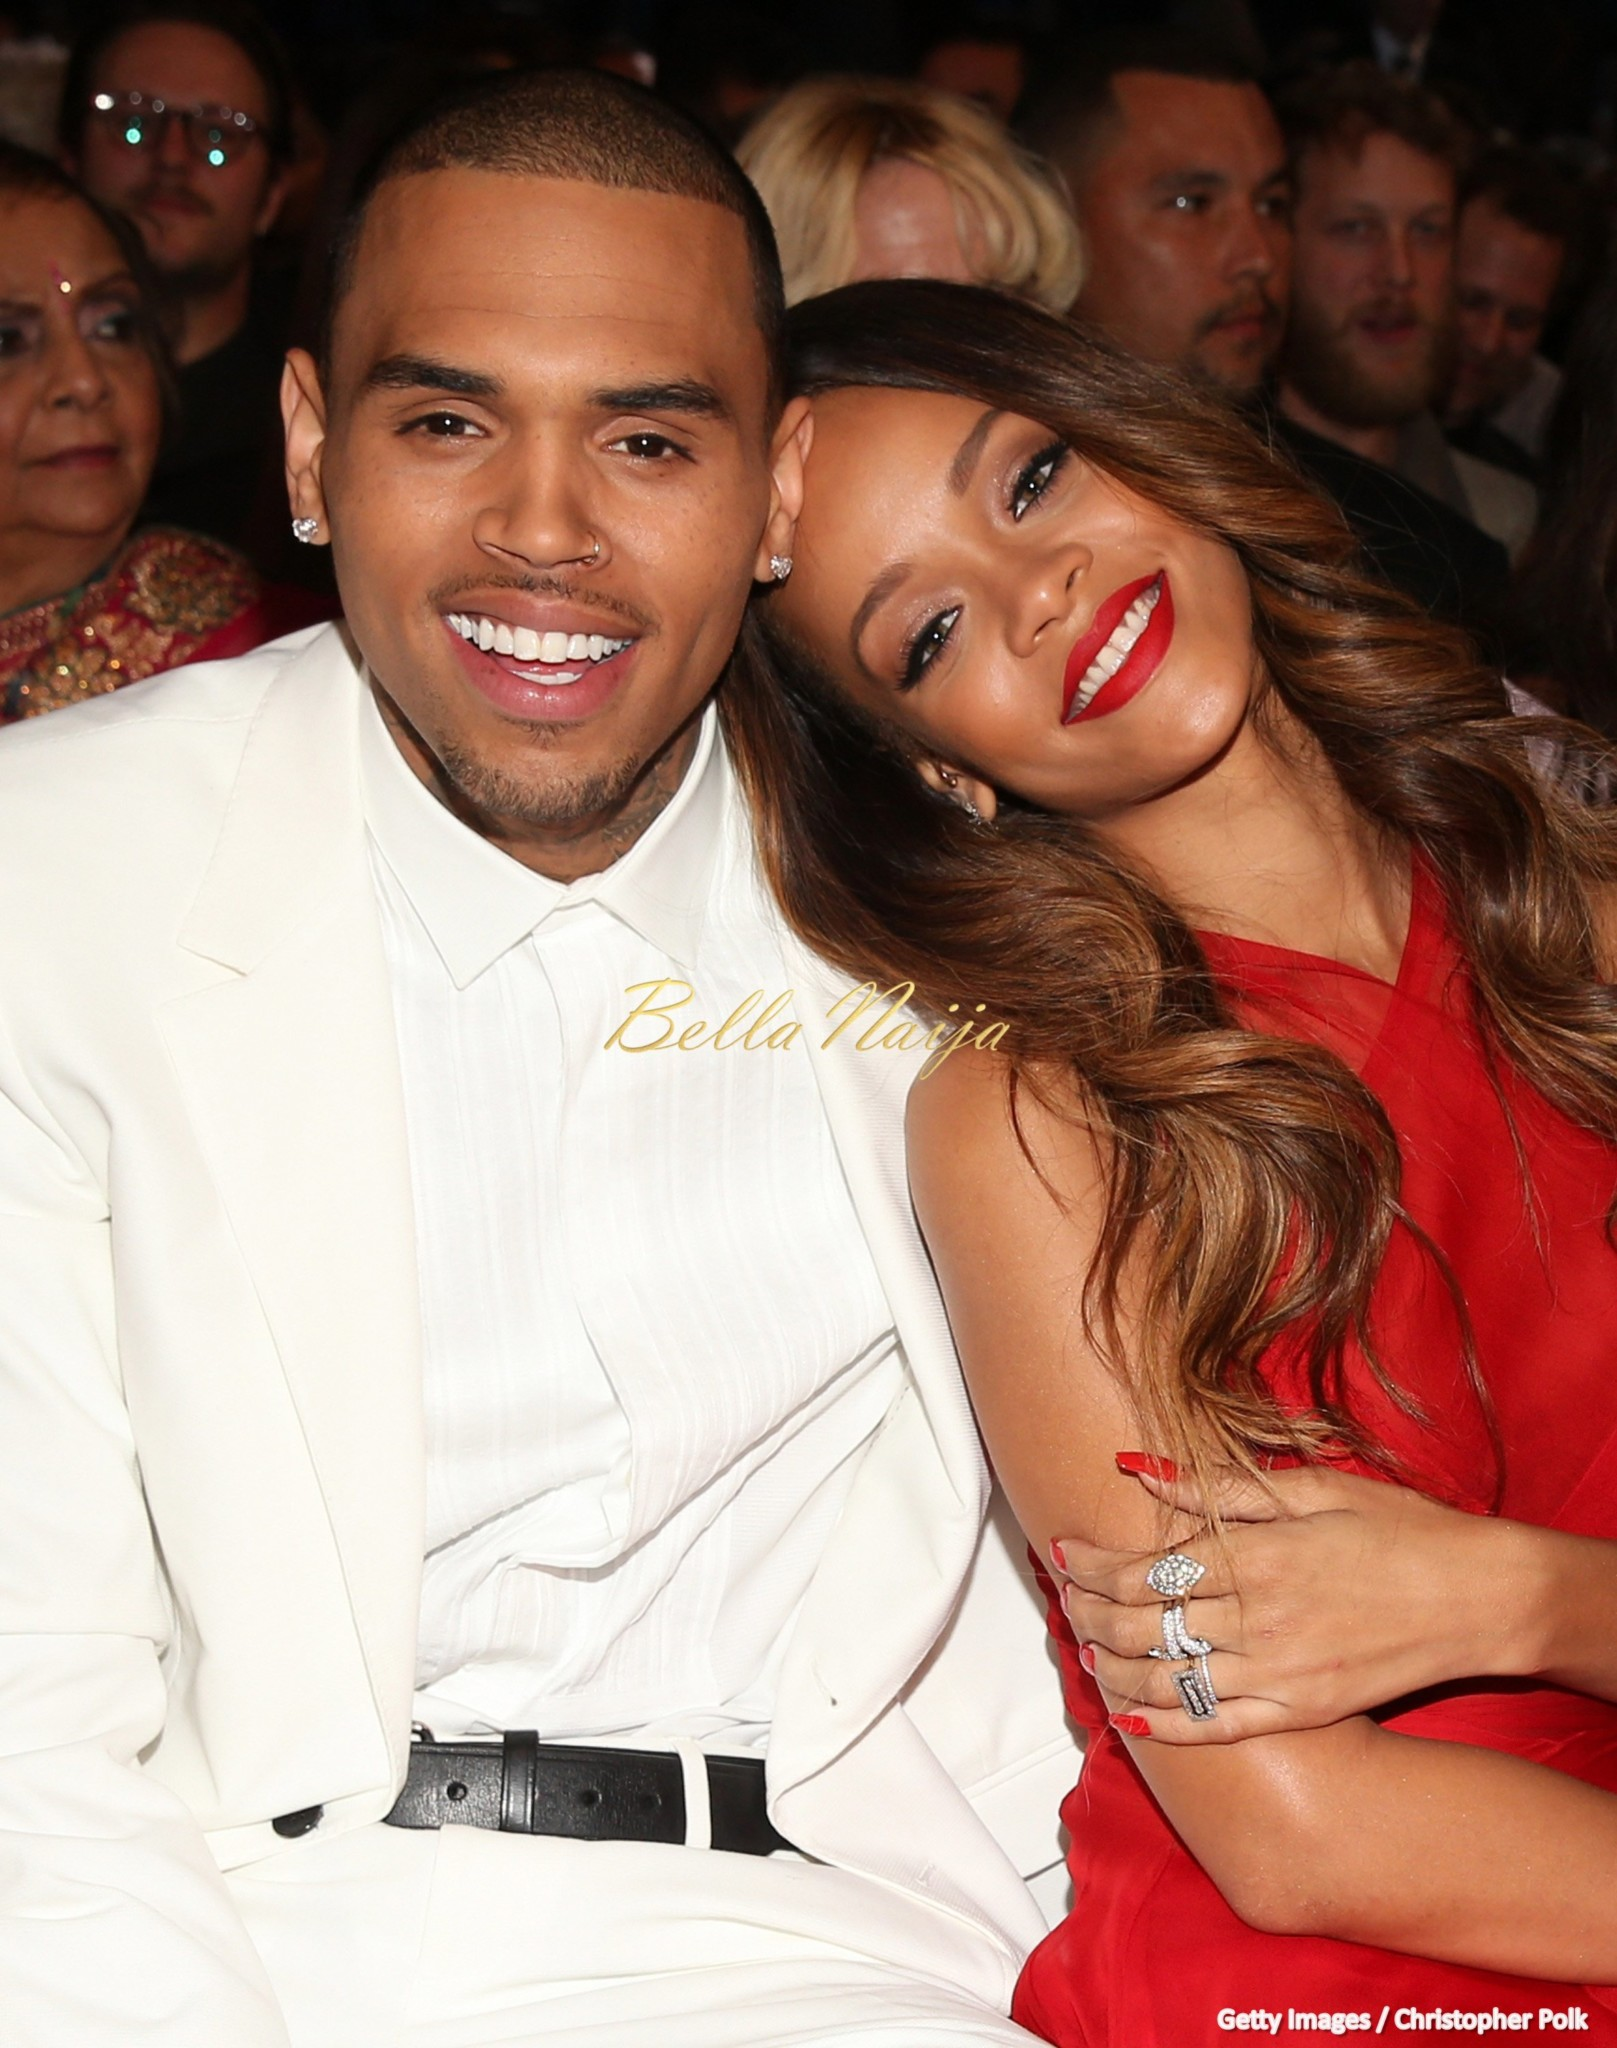 Chris Brown shares all the details of his Abusive Relationship with Rihanna in new Video